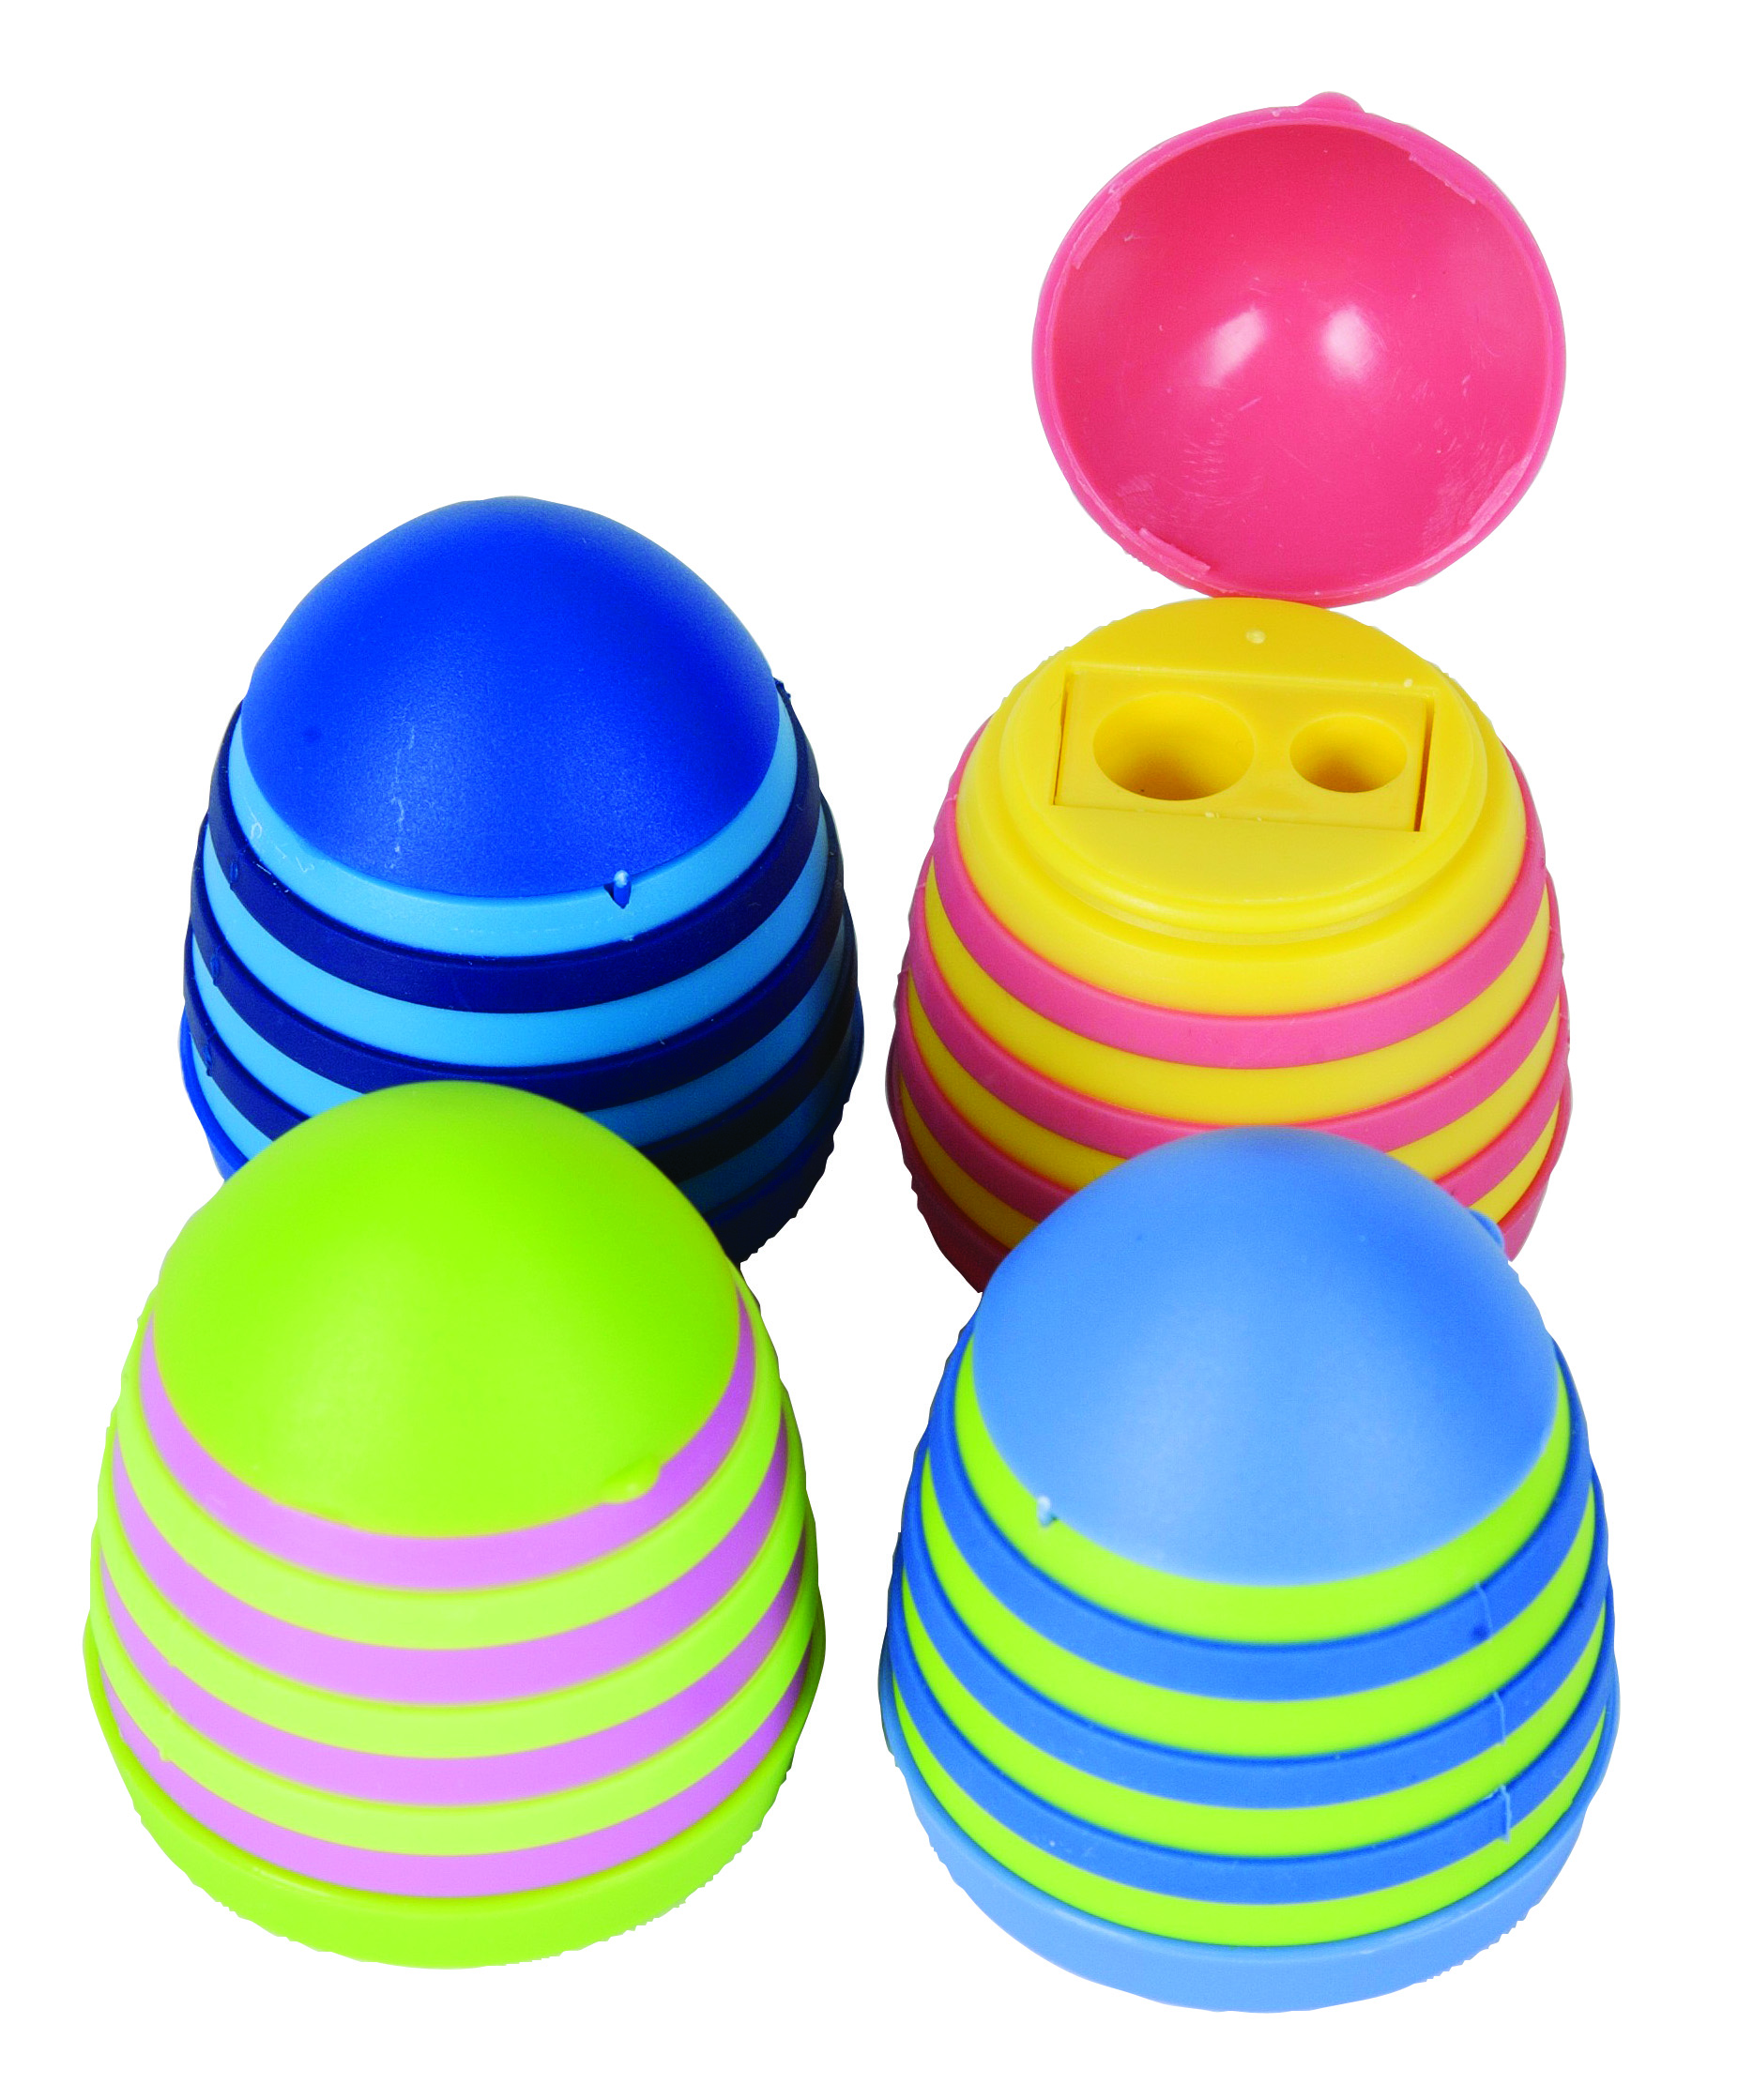 Westcott Novelty Two Hole Behive Pencil Shaperner, Assorted Colors (15241)